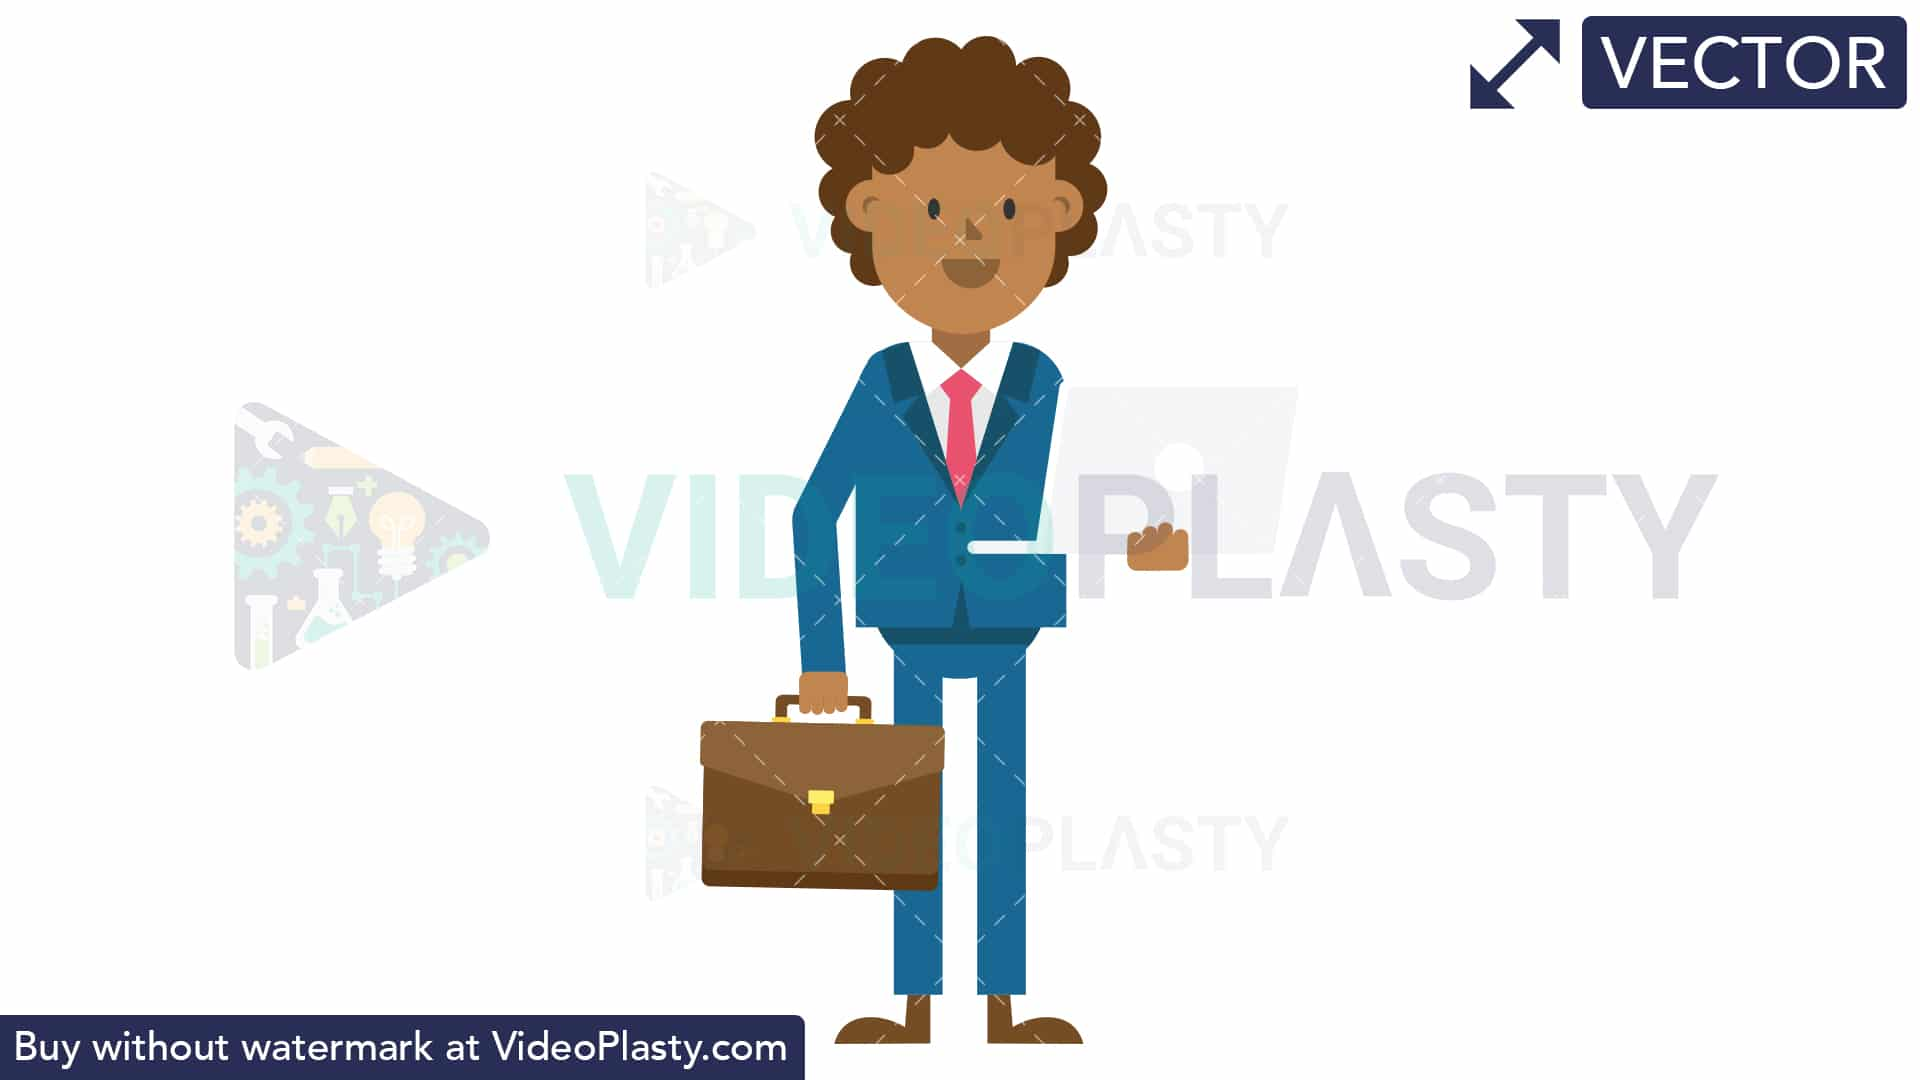 Man holding tie in hand clipart transparent download Black Corporate Man Holding a Laptop and Suitcase [VECTOR] transparent download